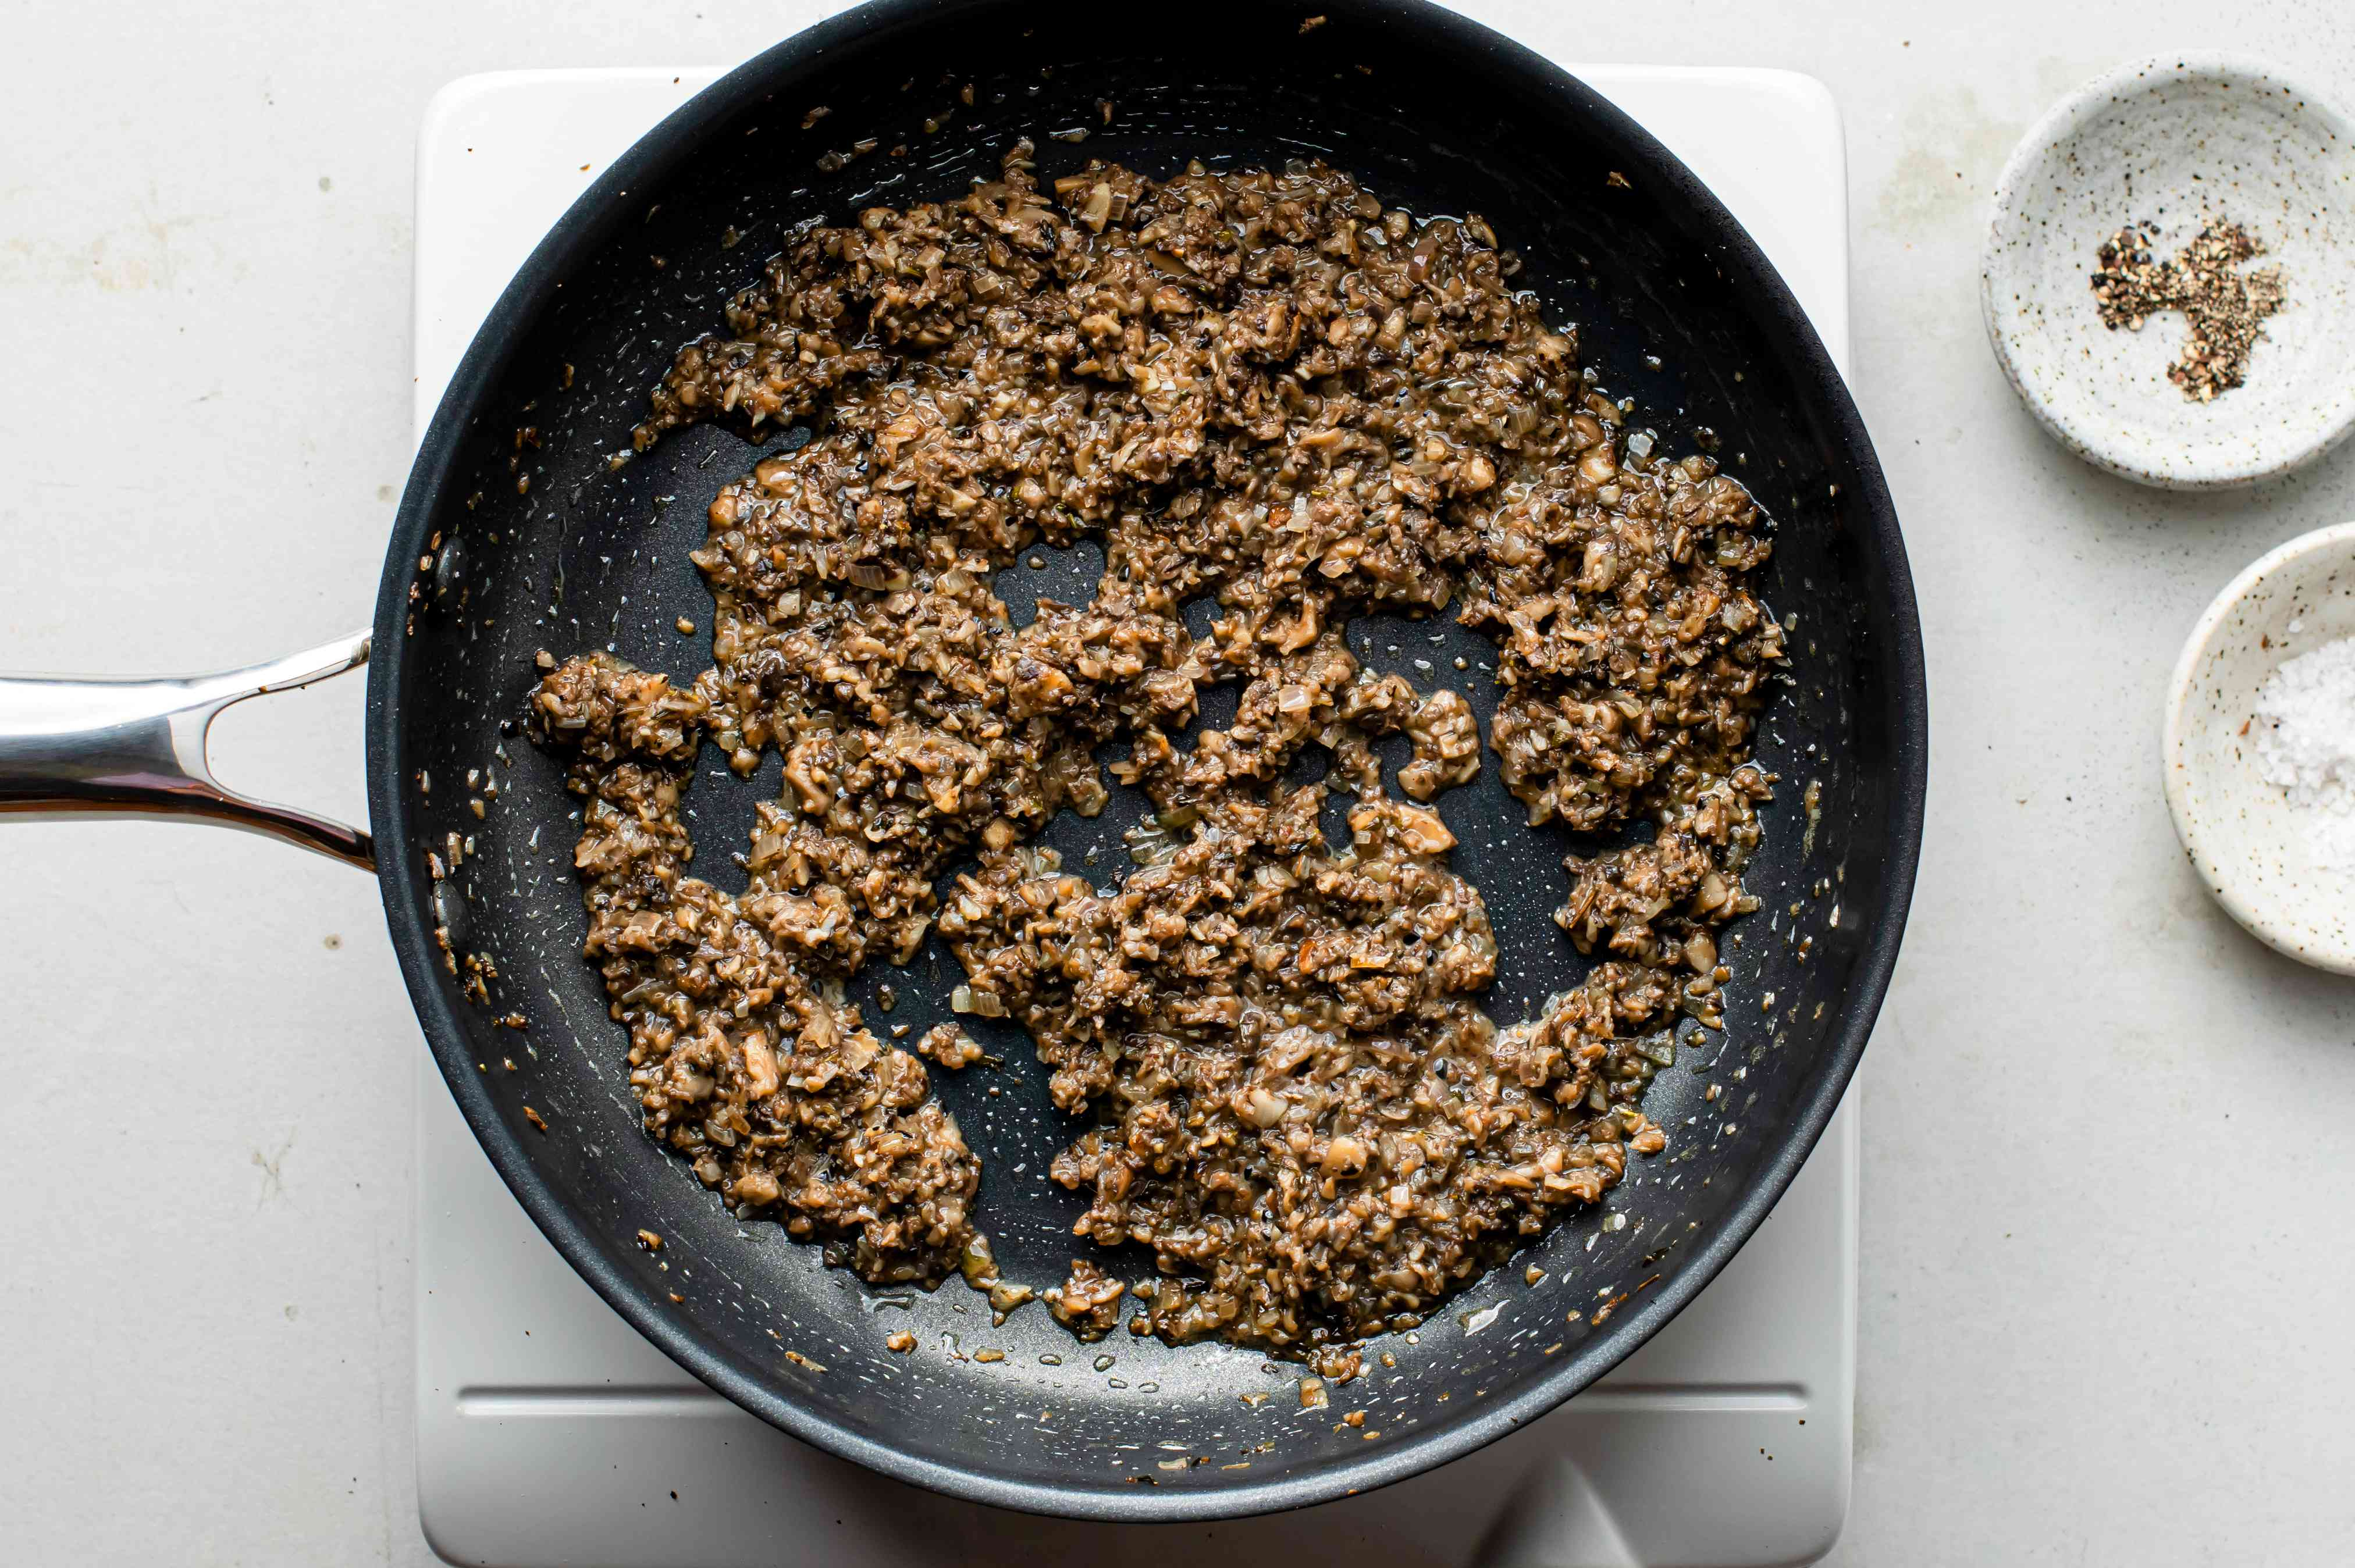 Cooked mushroom duxelles in a black nonstick pan